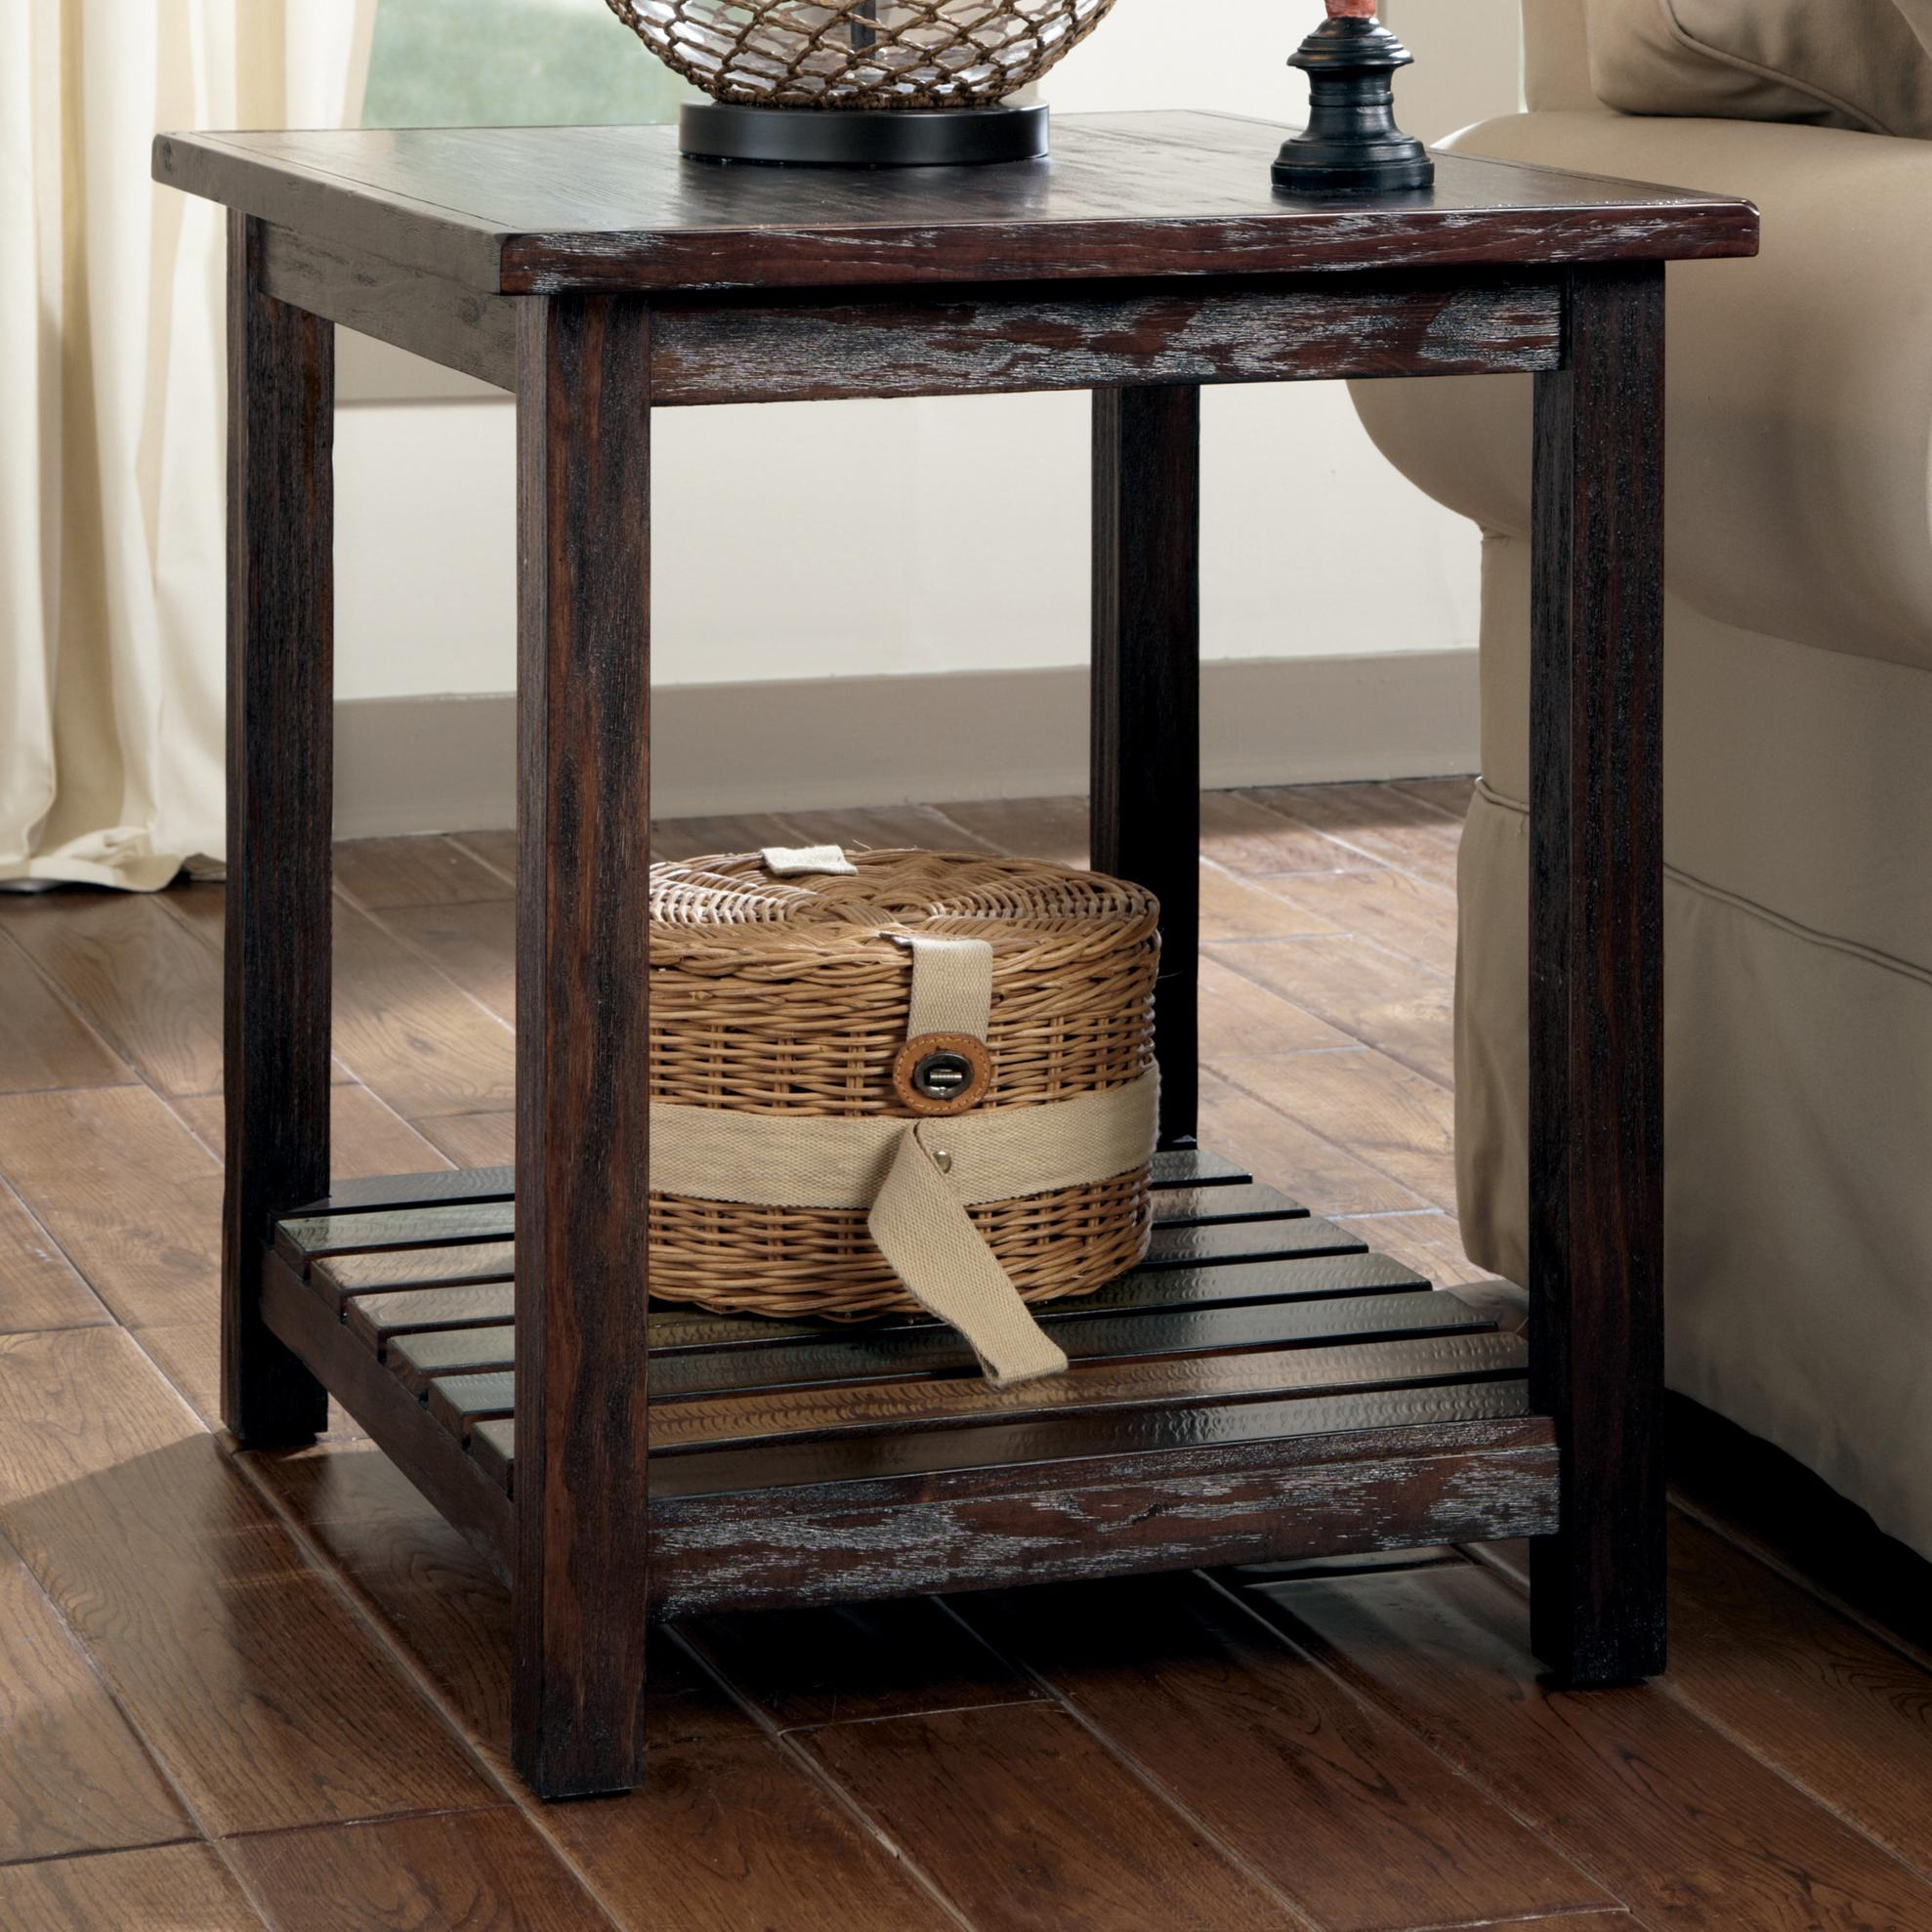 Signature Design by Ashley Mestler Rectangular End Table - Item Number: T580-3